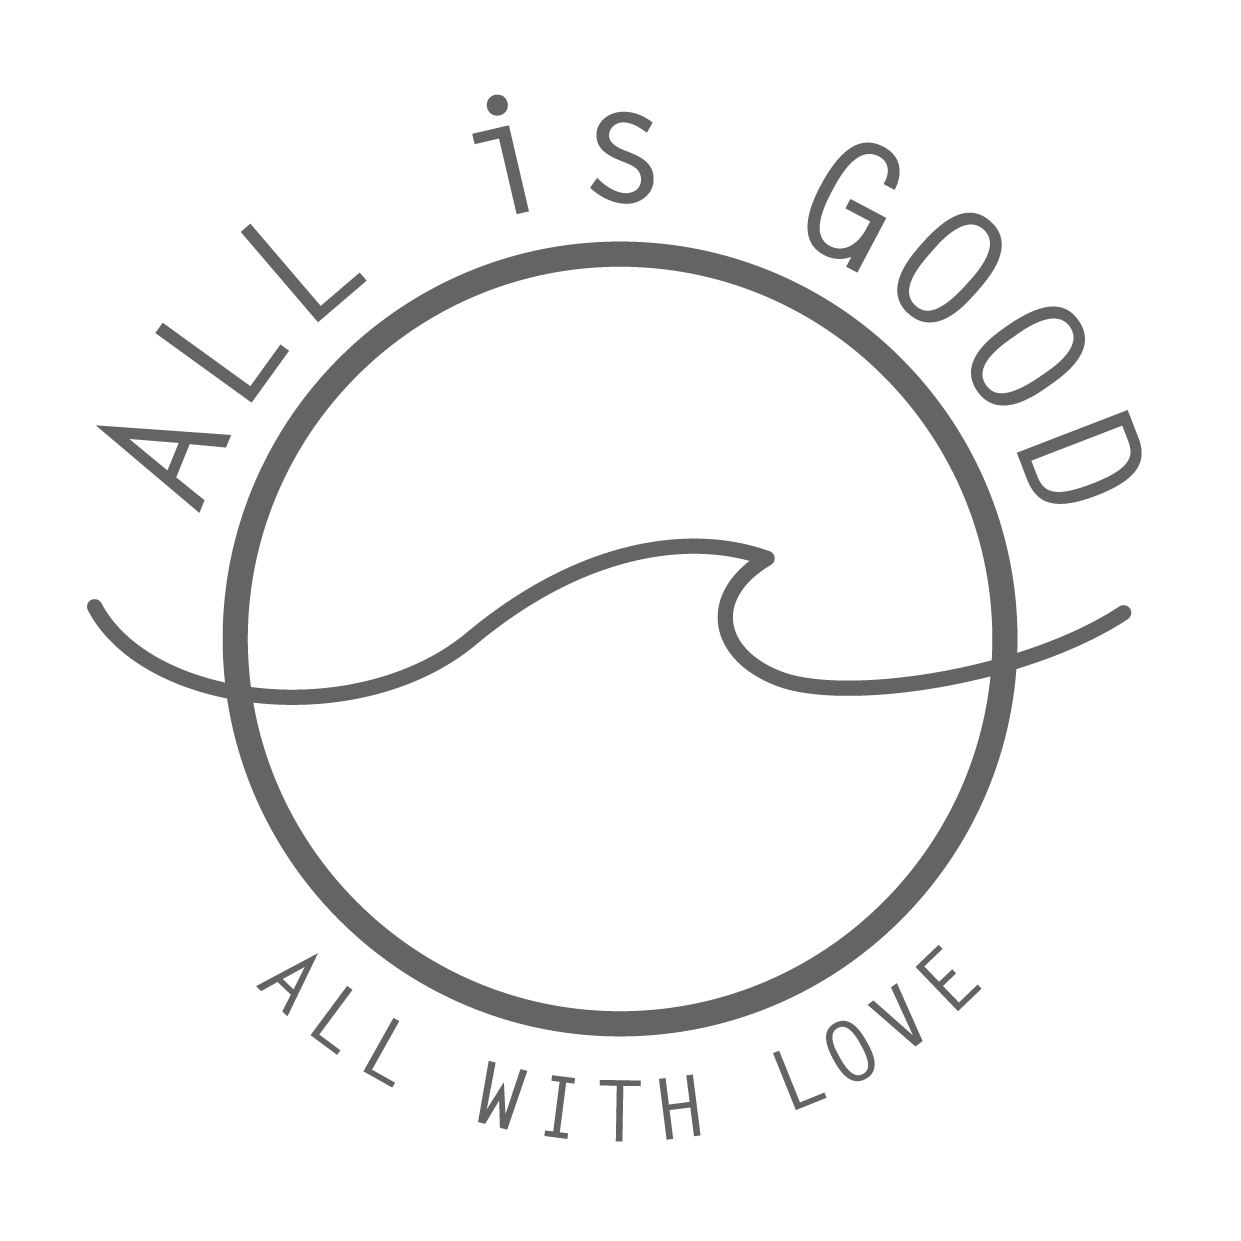 ALL is GOOD 株式会社オールイズグッド